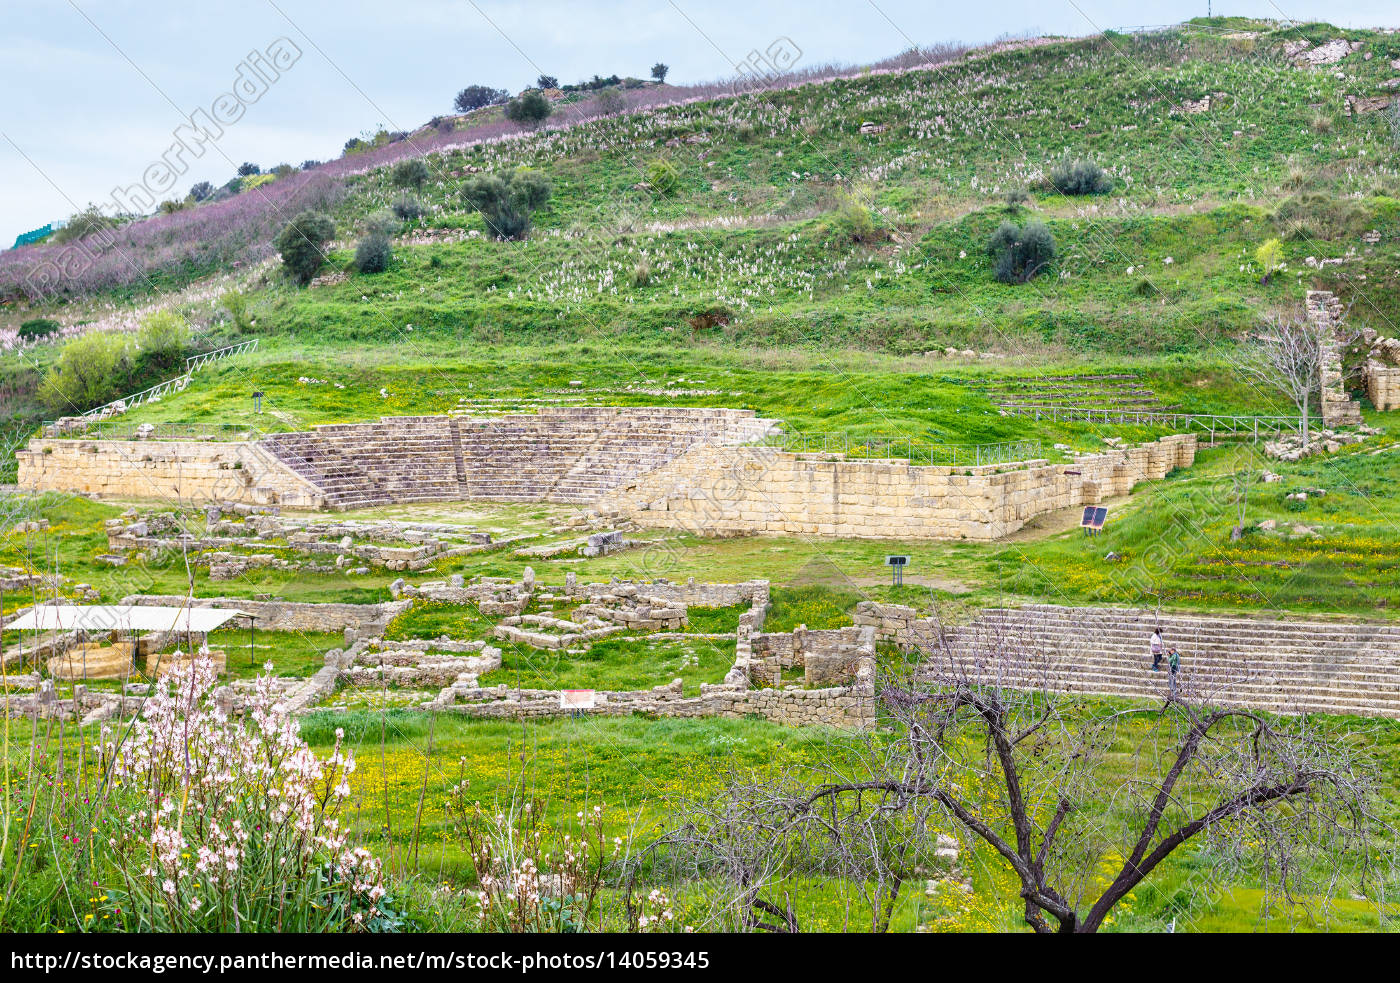 ancient, greek, theater, and, agora, in - 14059345